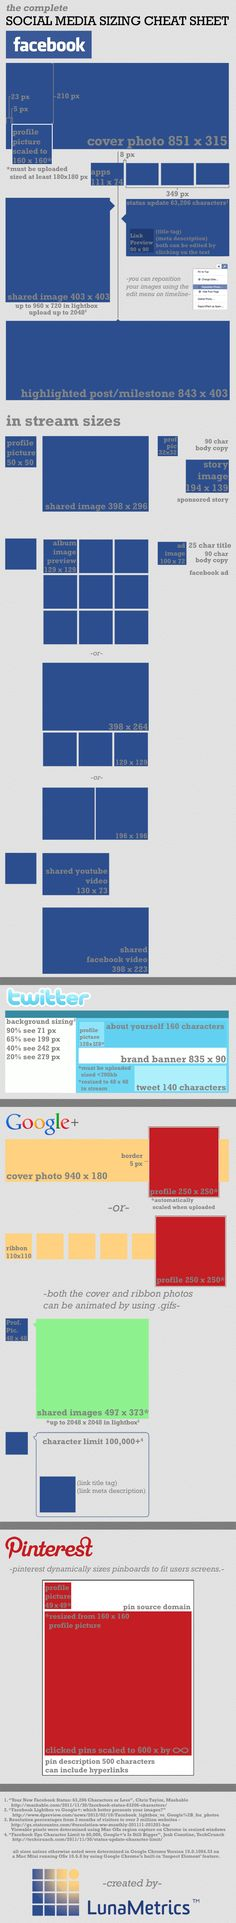 The Complete Social Media Sizing Cheat Sheet.